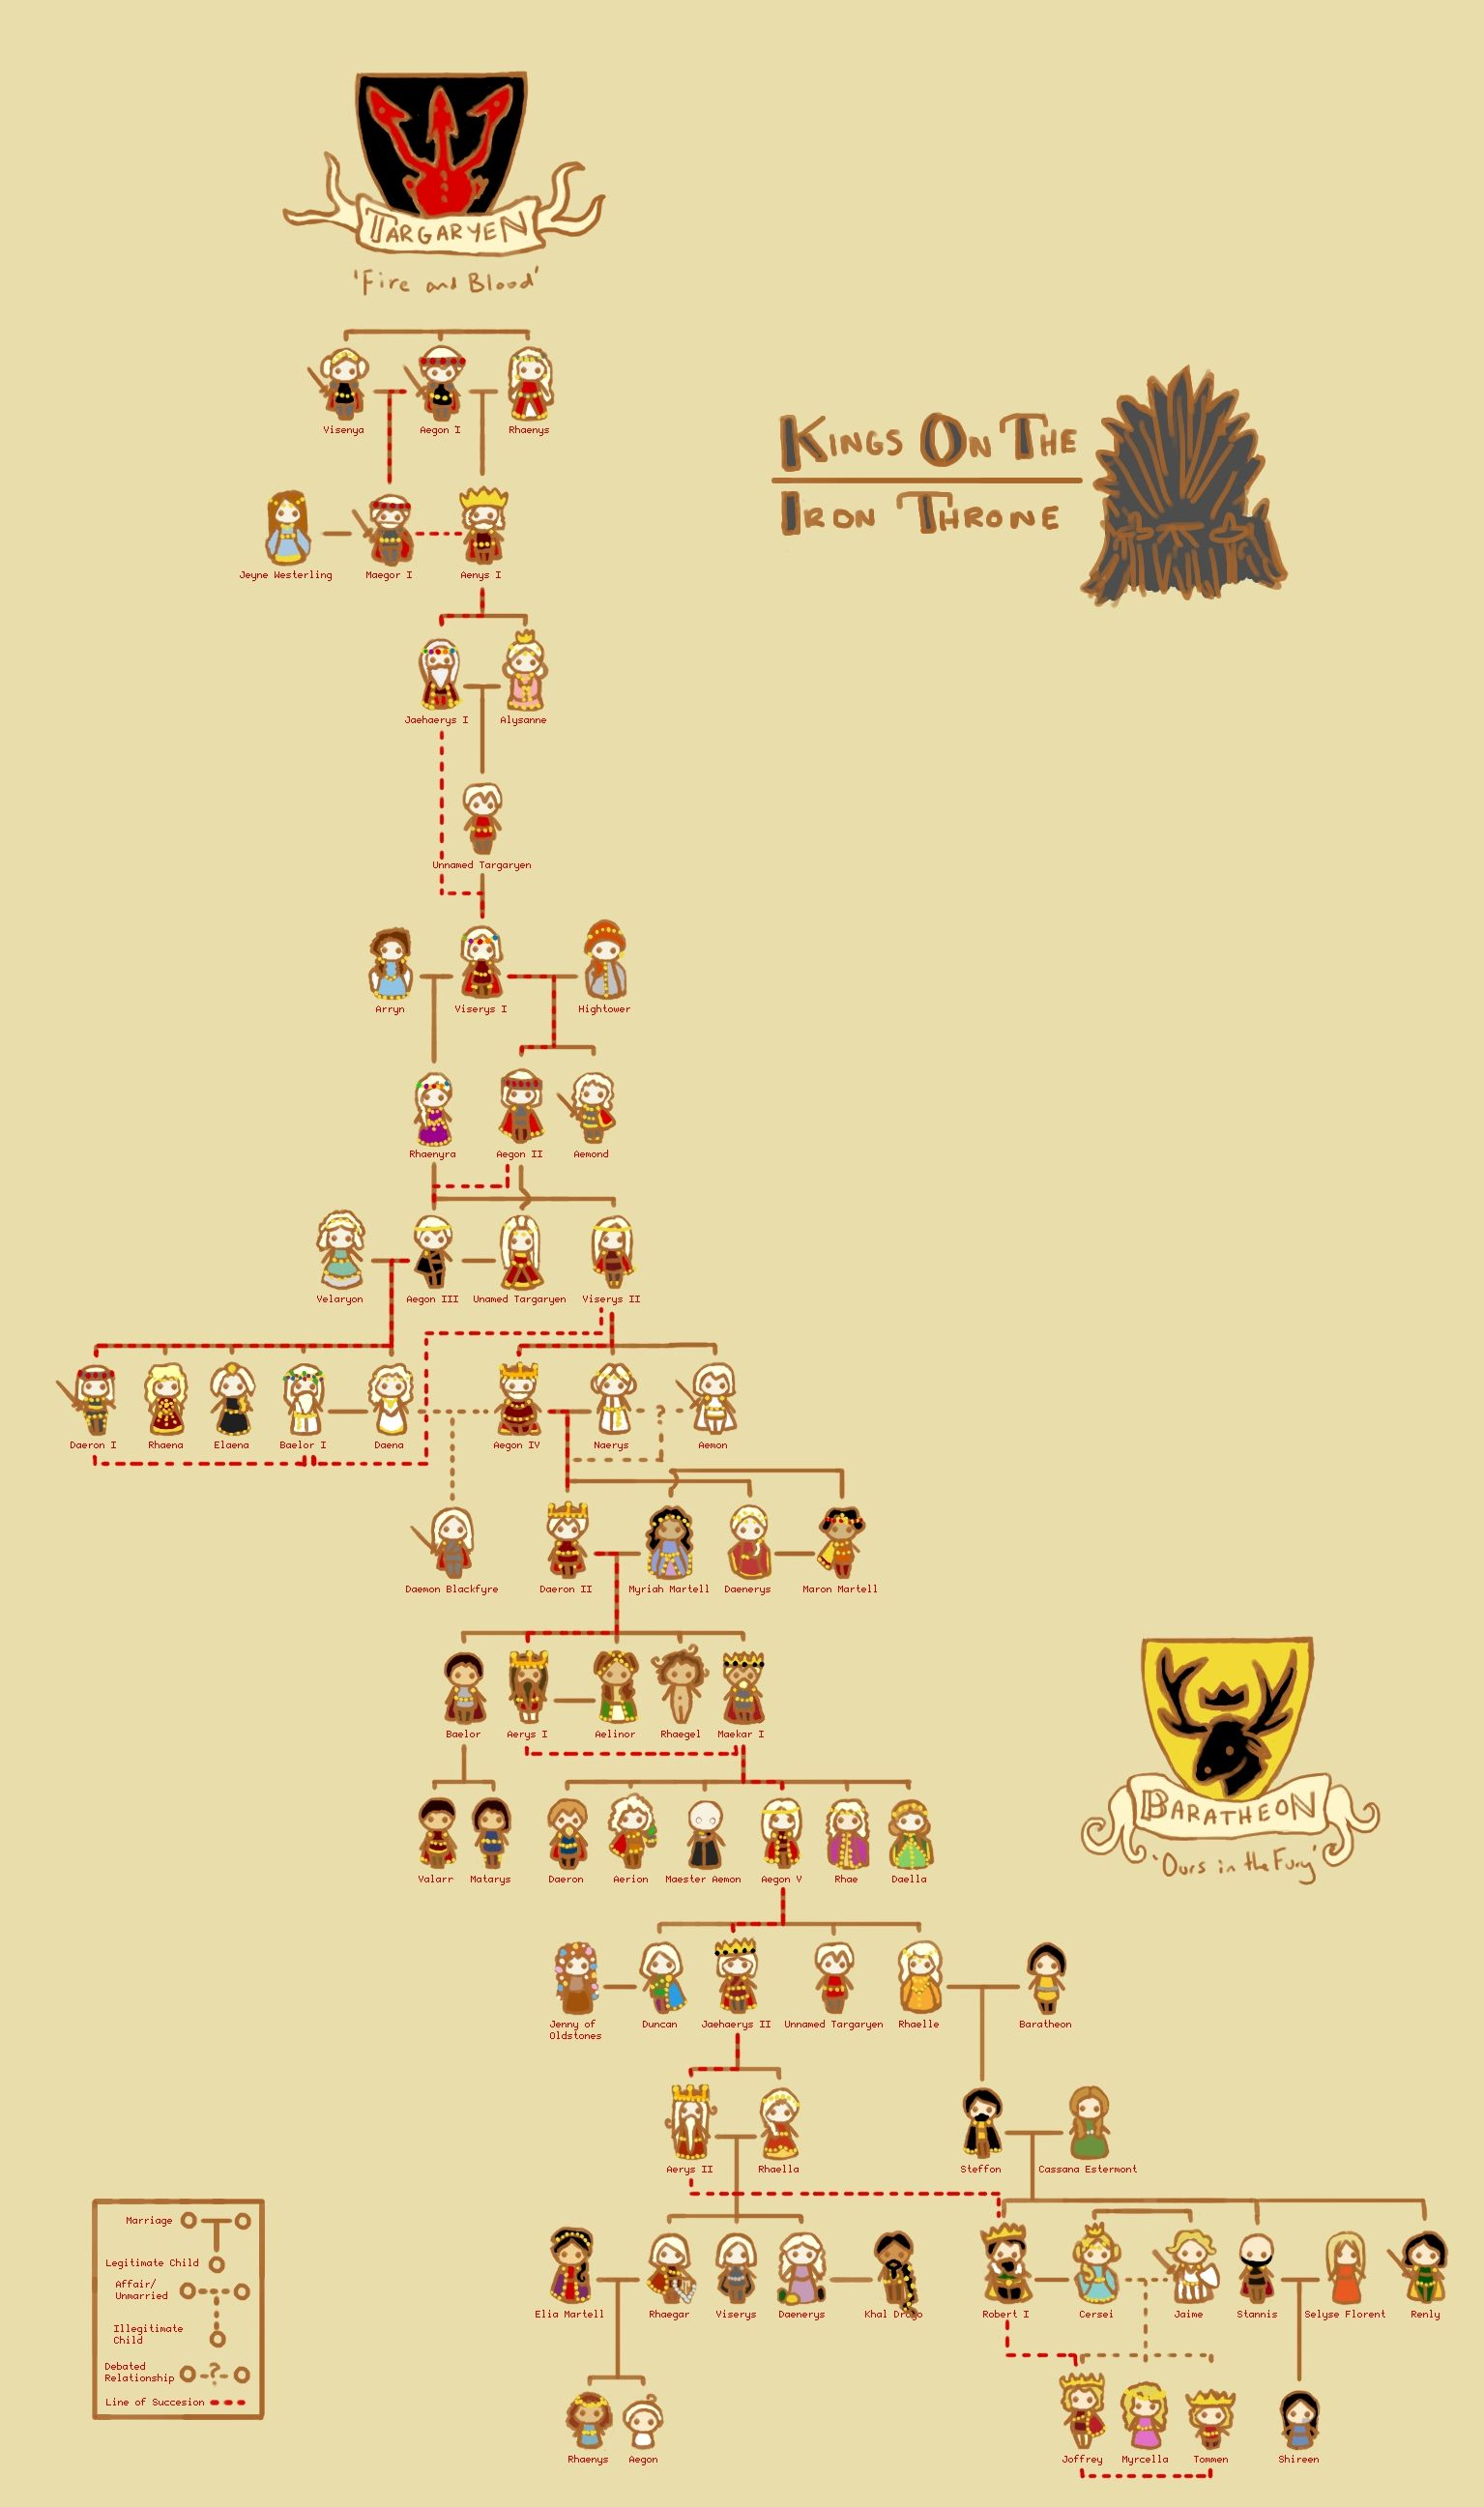 Kings on the Iron Throne Family Tree by Sentient Tree